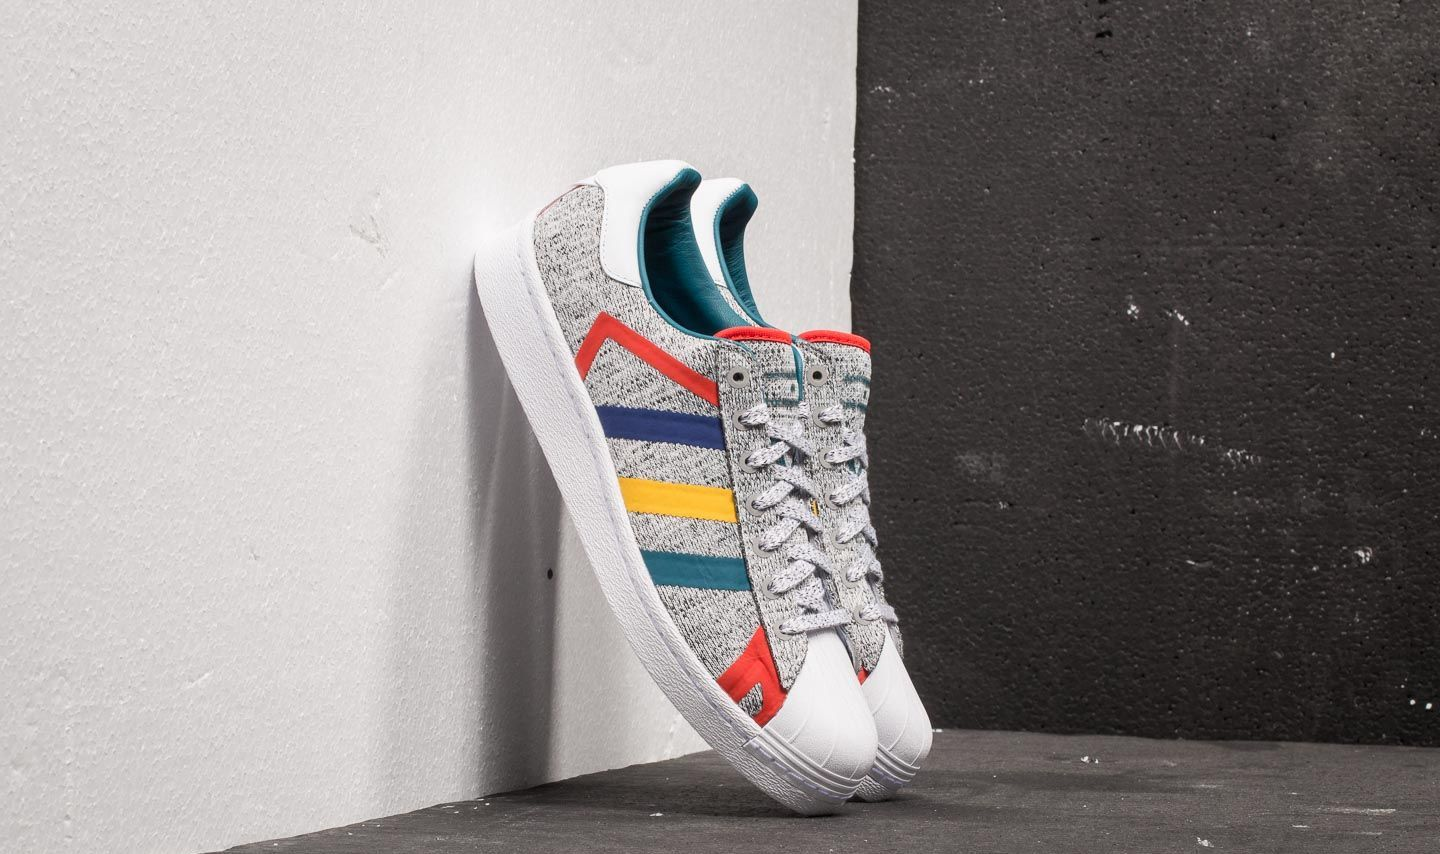 adidas x White Mountaineering Superstar Boost Light Grey Heather Real Teal Ftw White | Footshop